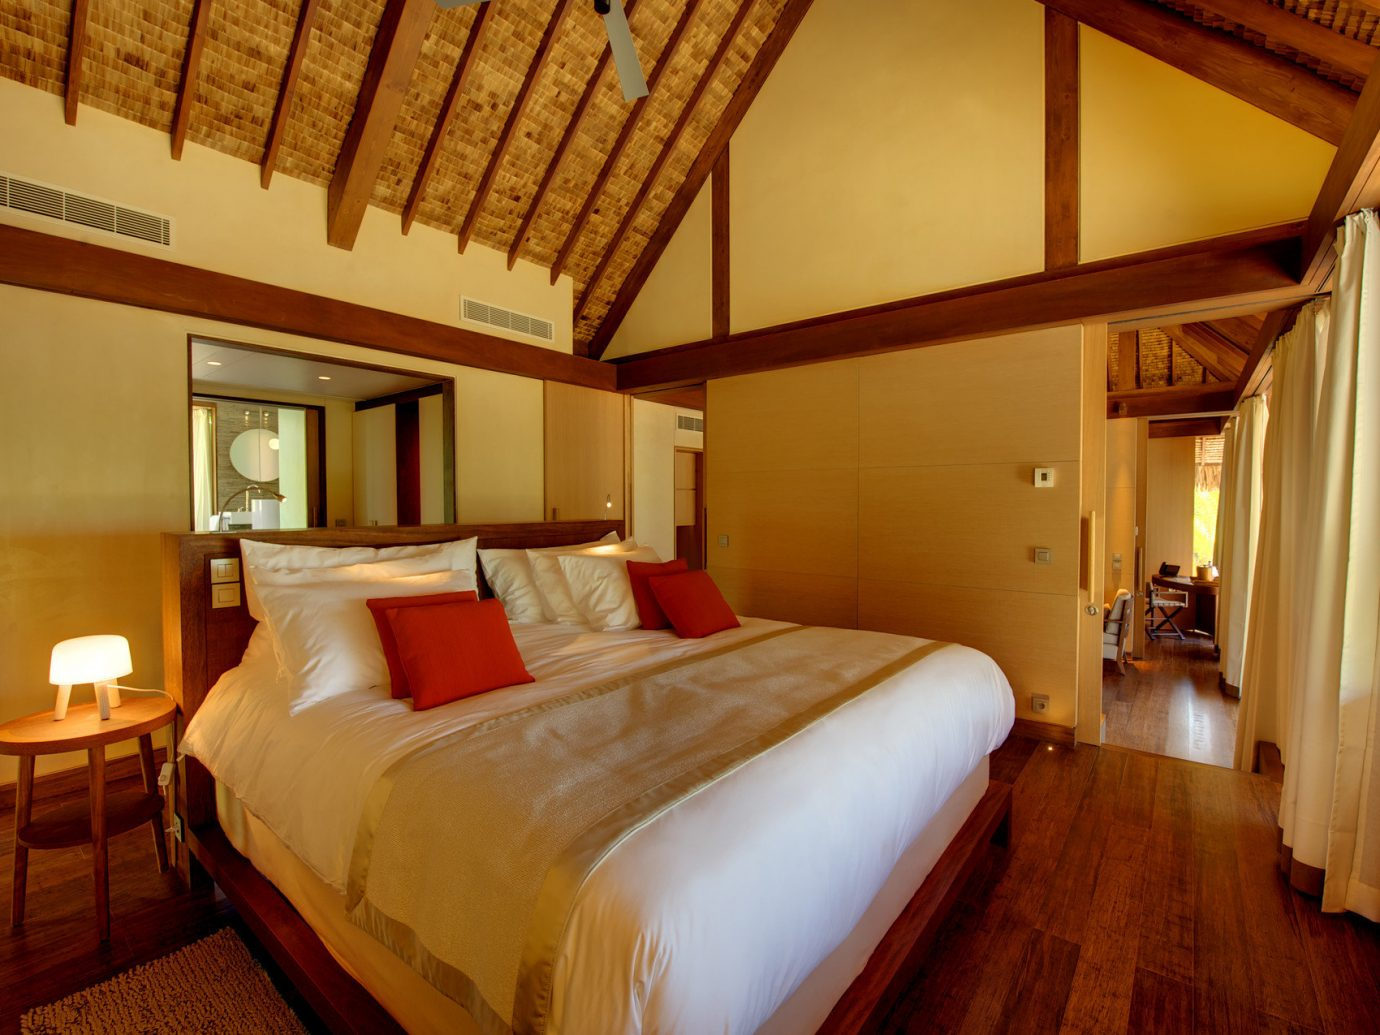 All-Inclusive Resorts ambient lighting beach house bed Bedroom Hotels hut Luxury Luxury Travel remote Romantic Hotels Rustic serene indoor floor wall room hotel property building ceiling cottage estate Suite real estate Villa